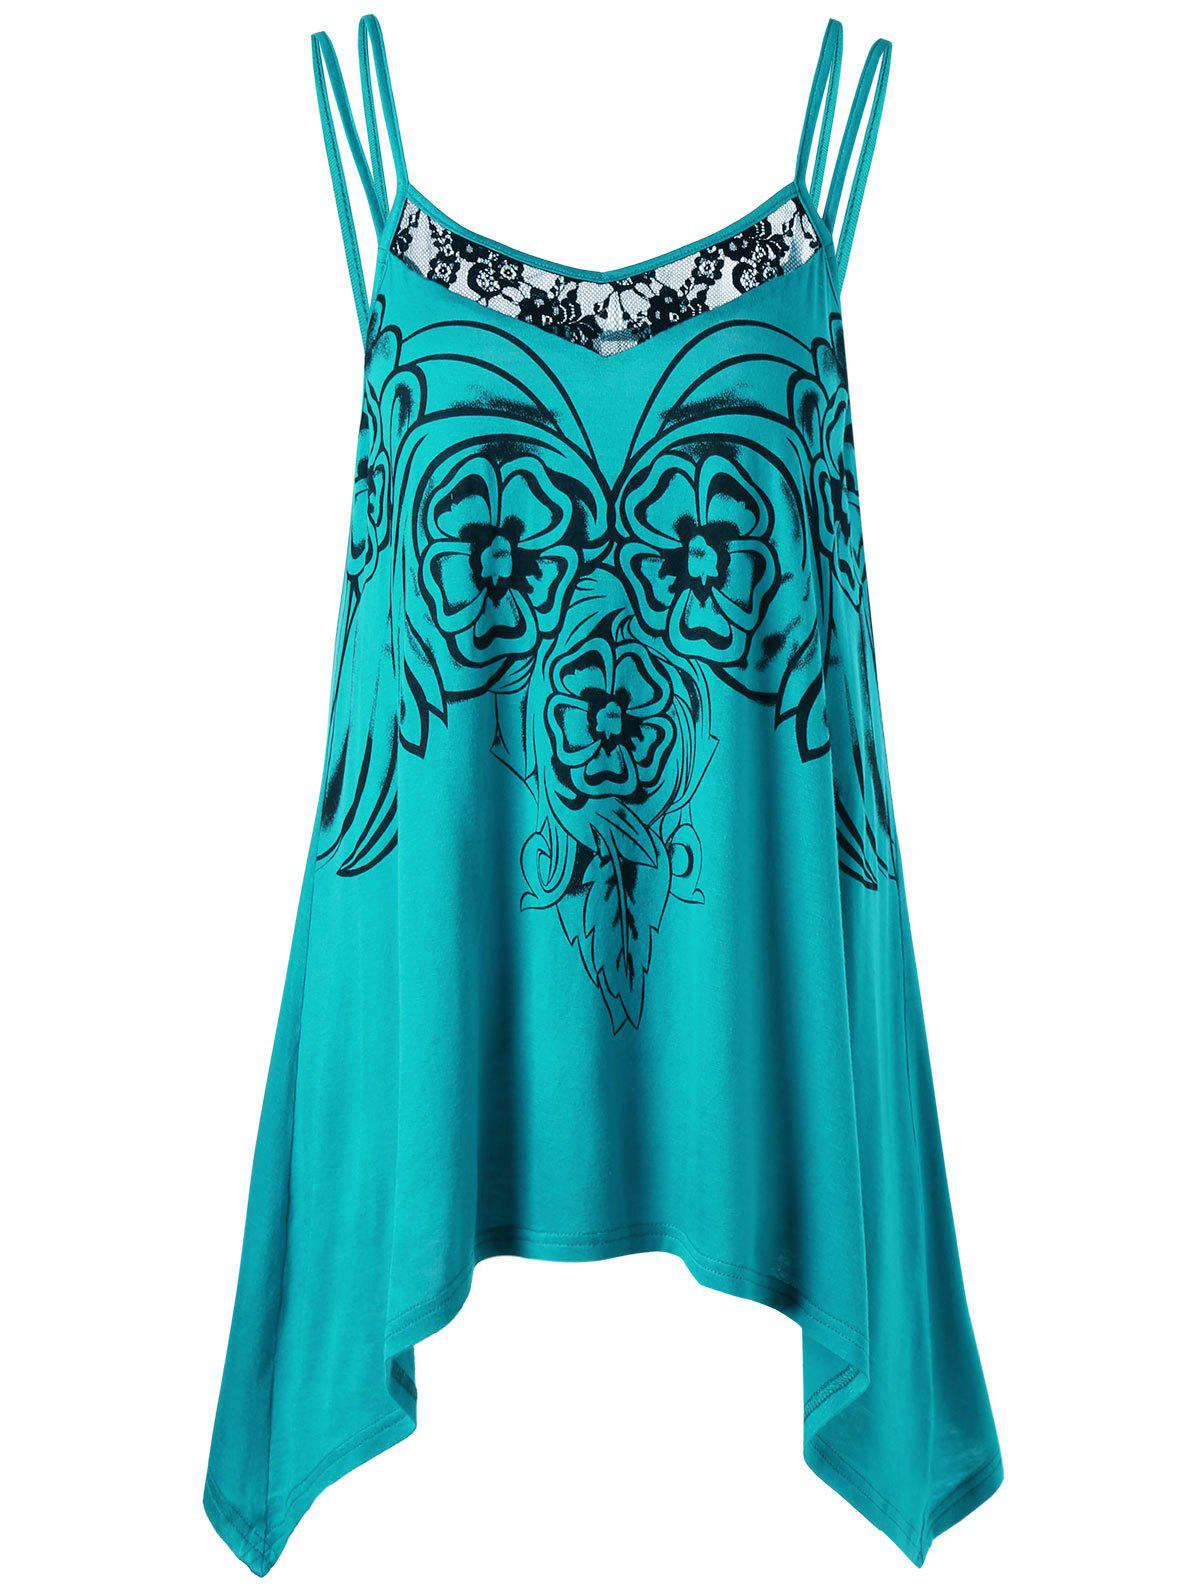 Asymmetric Plus Size Cami Tunic TopWOMEN<br><br>Size: 4XL; Color: BLUE; Material: Rayon; Shirt Length: Long; Sleeve Length: Sleeveless; Collar: Spaghetti Strap; Style: Casual; Season: Summer; Embellishment: Lace; Pattern Type: Floral; Weight: 0.2040kg; Package Contents: 1 x Top;